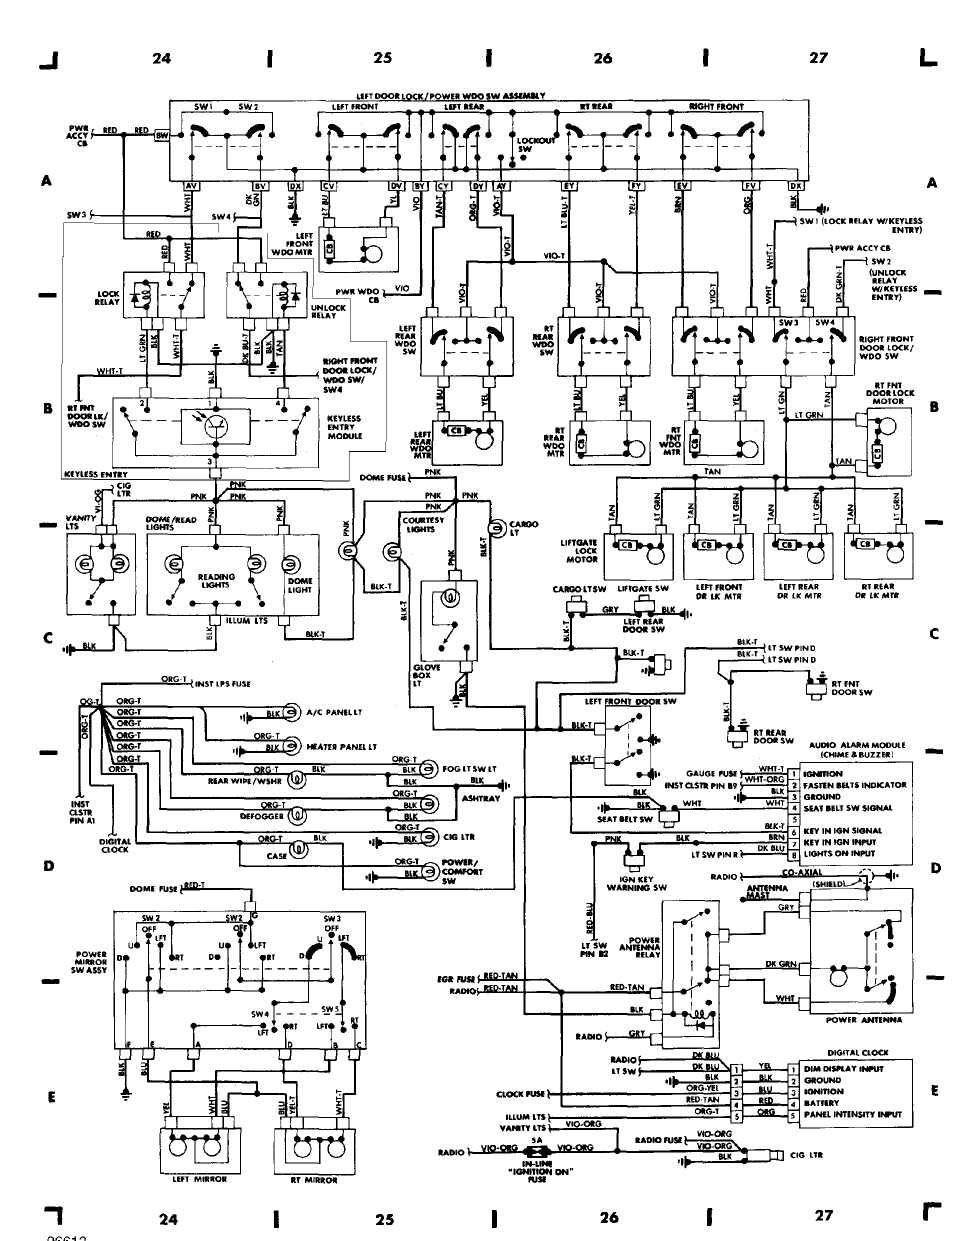 88 xj wiring diagram schematics wiring diagrams u2022 rh hokispokisrecords com 1991 jeep cherokee headlight wiring diagram 1991 jeep cherokee brake light wiring diagram